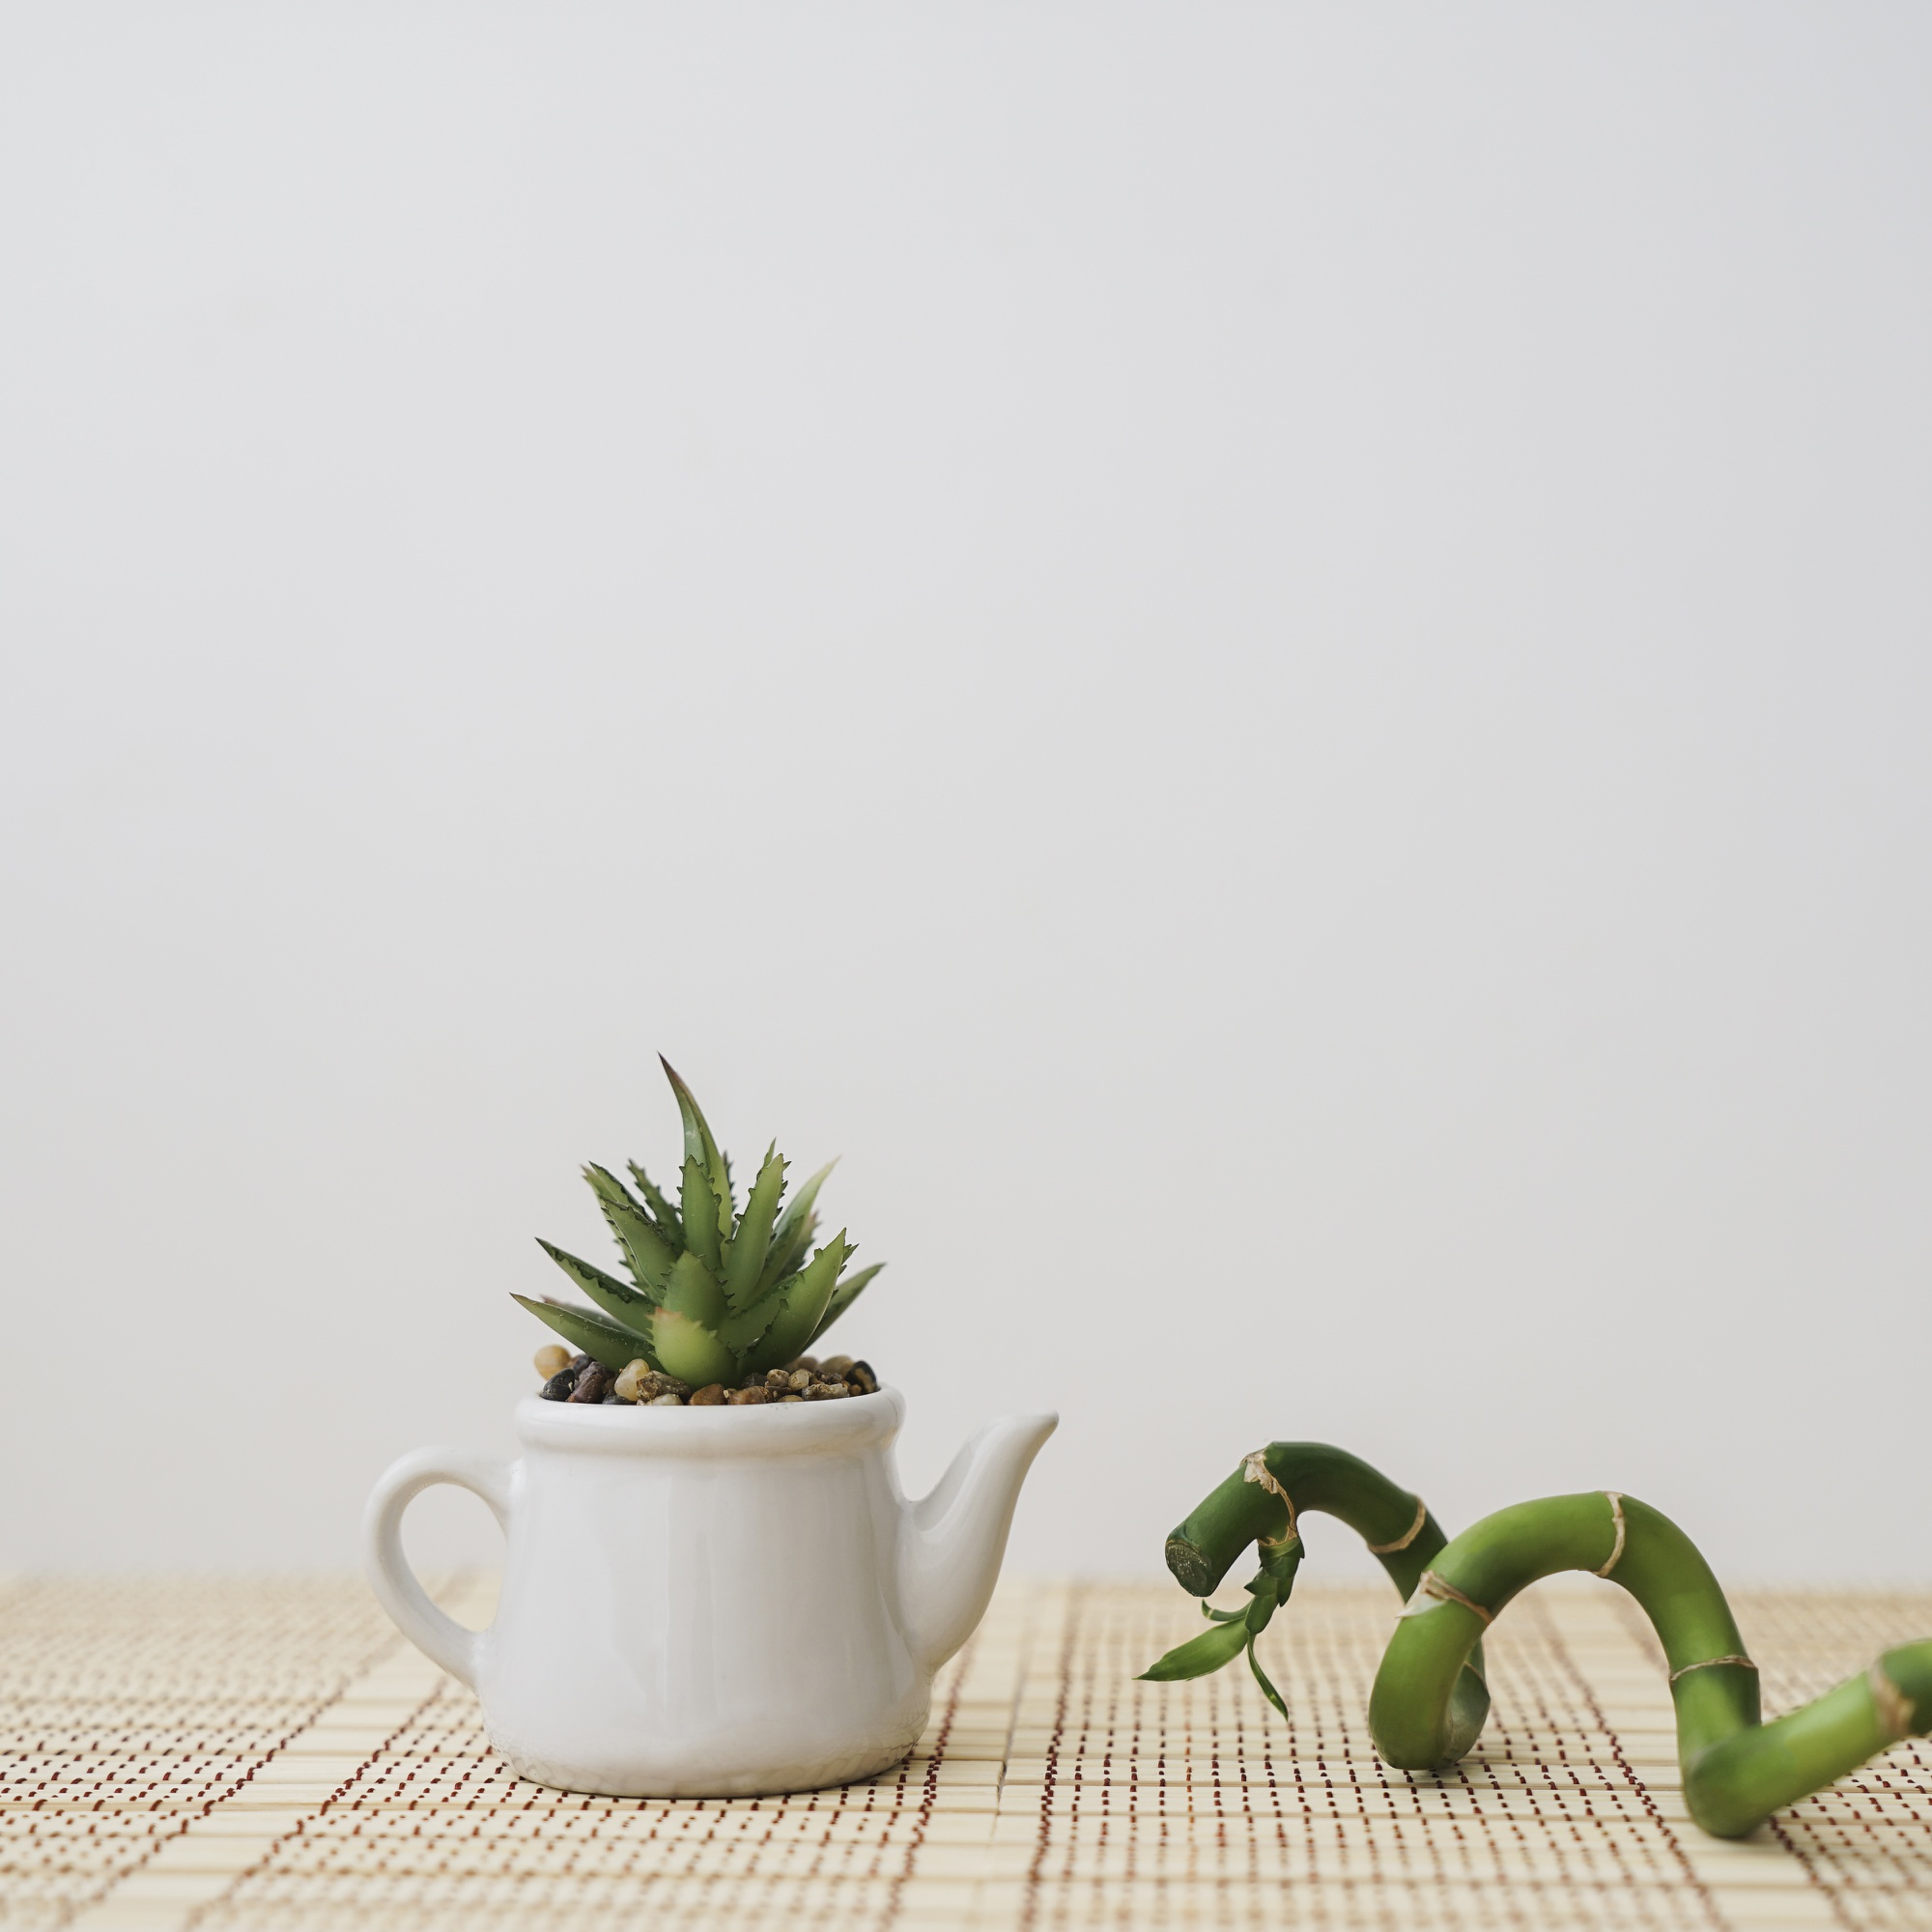 Bamboo next to a teapot with plant